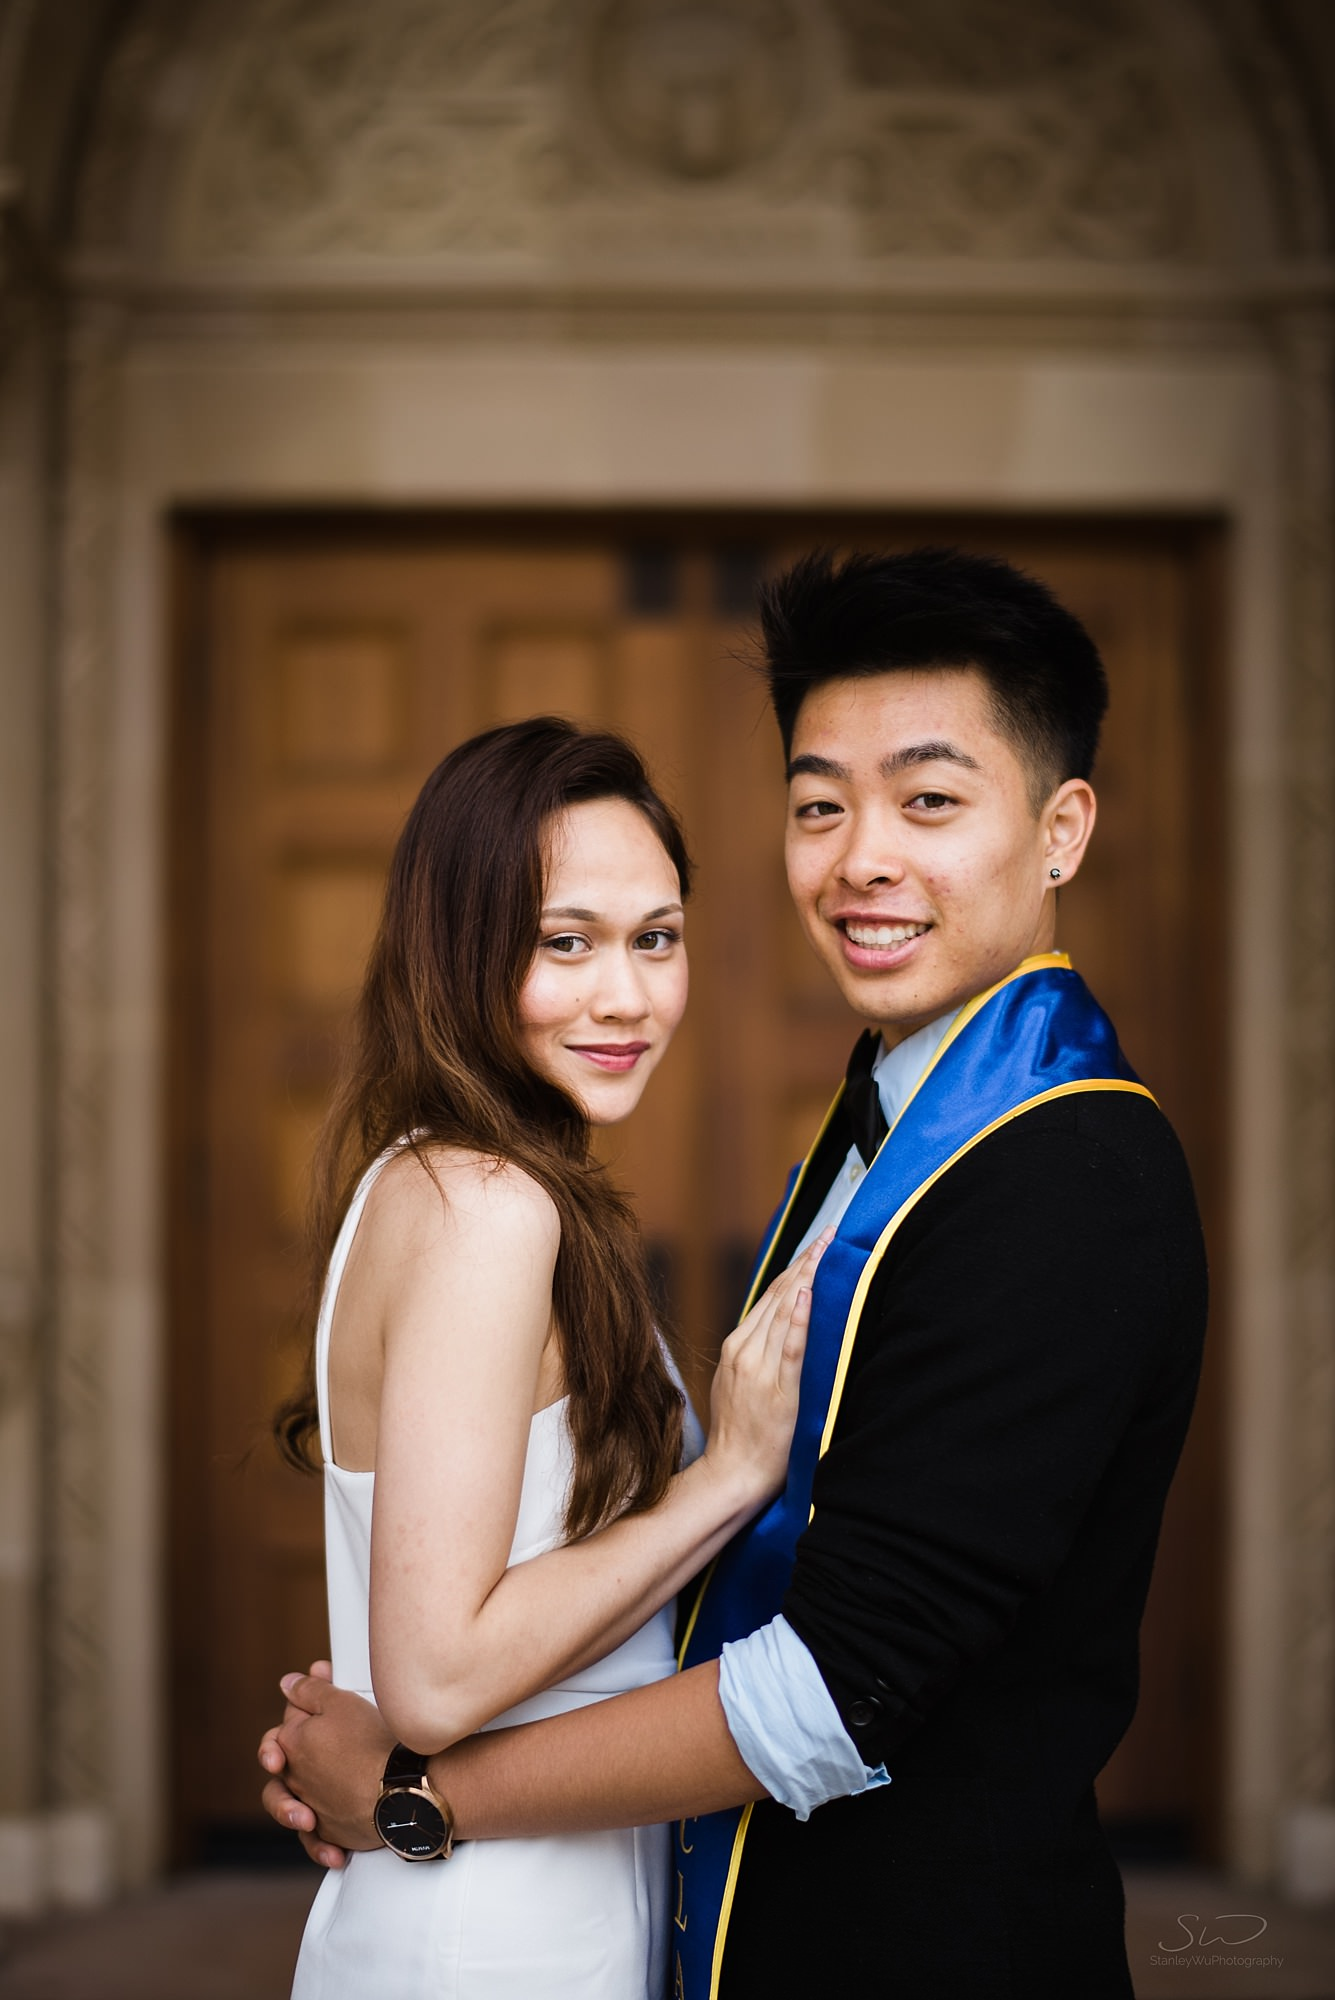 cute graduation senior portrait of a couple in each others arms looking at the camera at ucla in los angeles